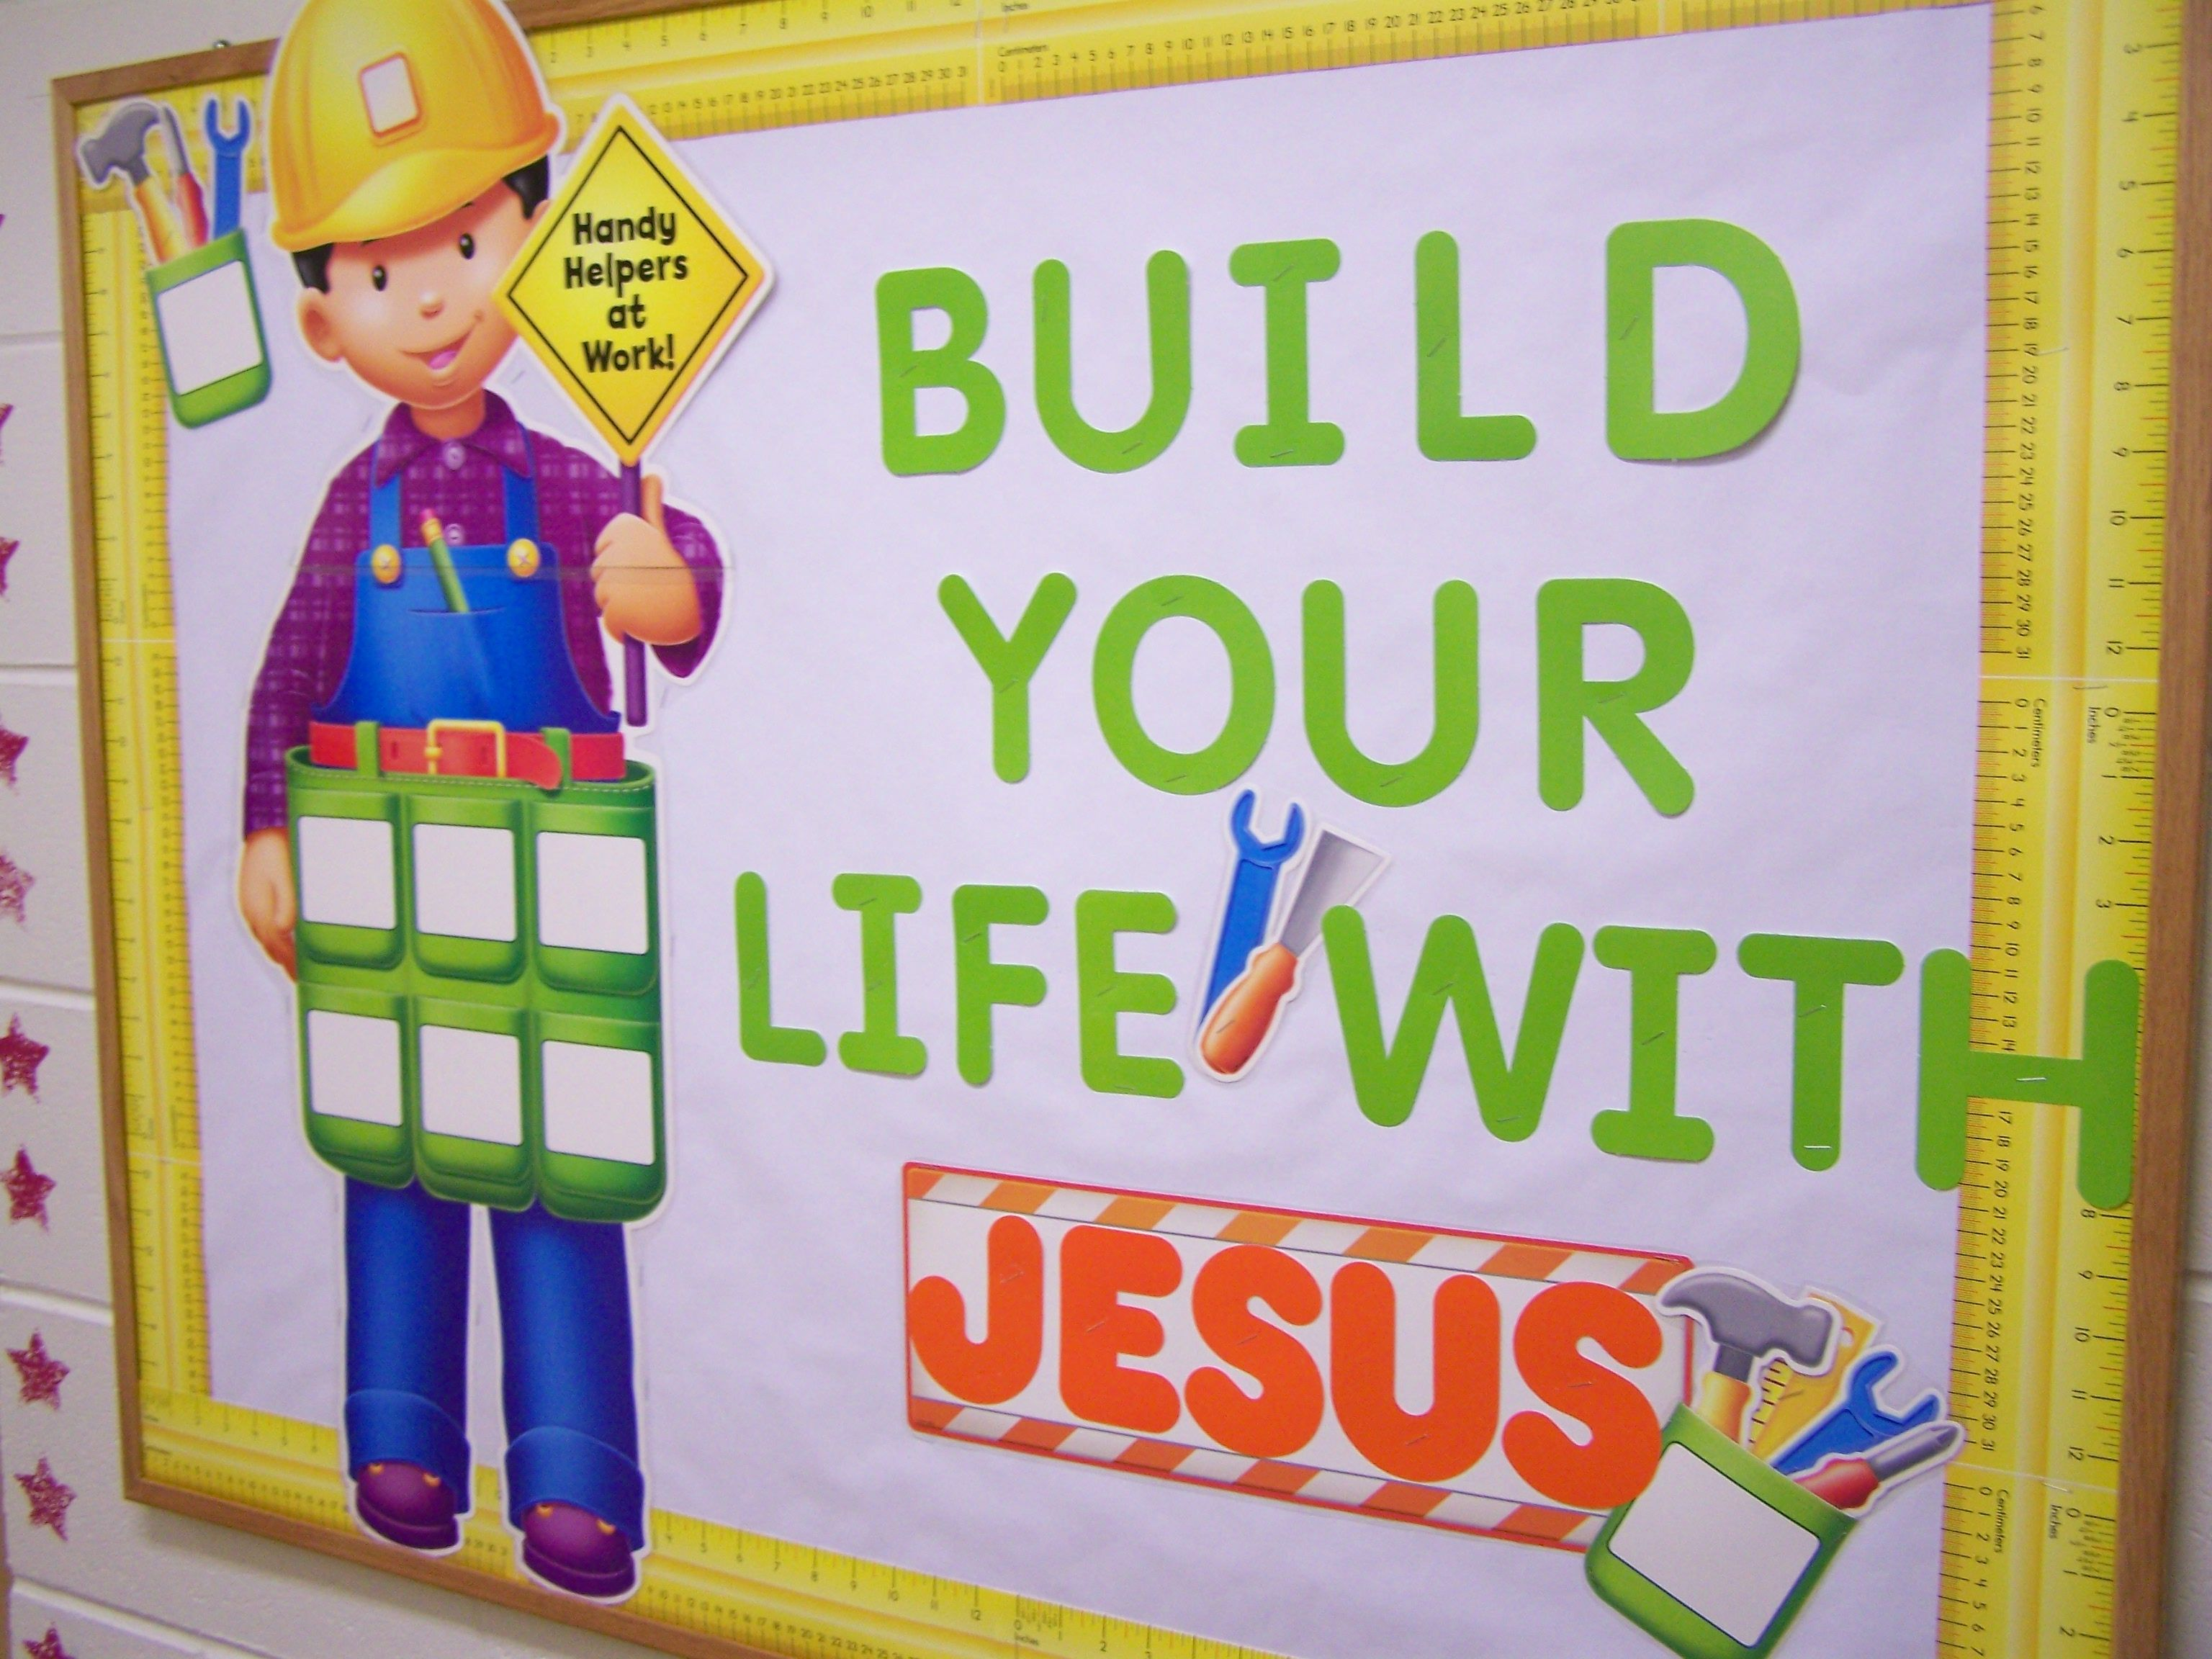 Go green vegetable bulletin board idea myclassroomideas com - Build You Life With Jesus Bulletin Board Idea